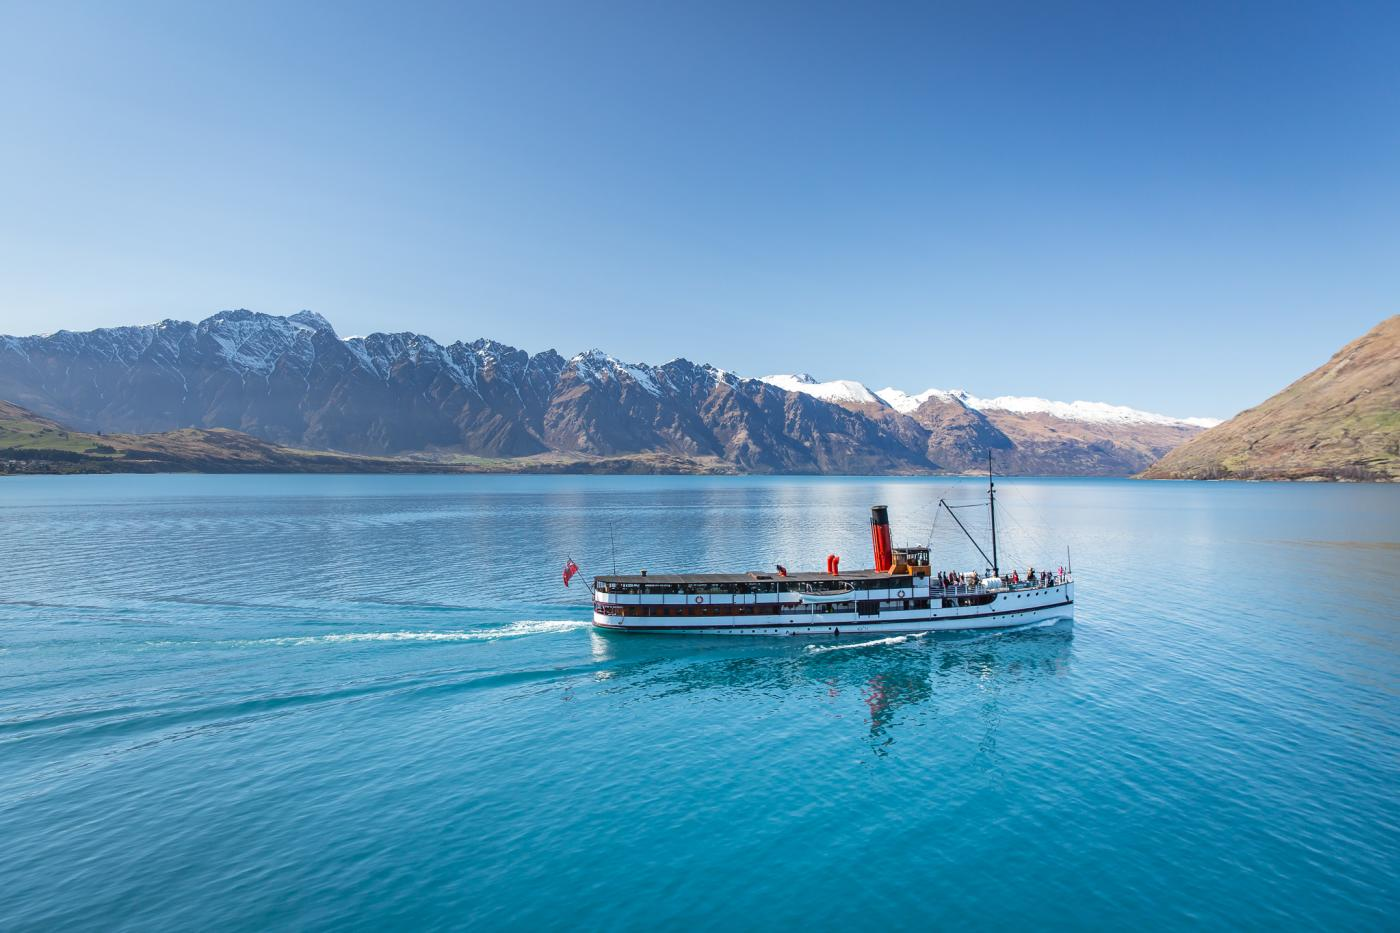 TSS Earnslaw Vintage Steamship Lake Cruises - Real Journeys